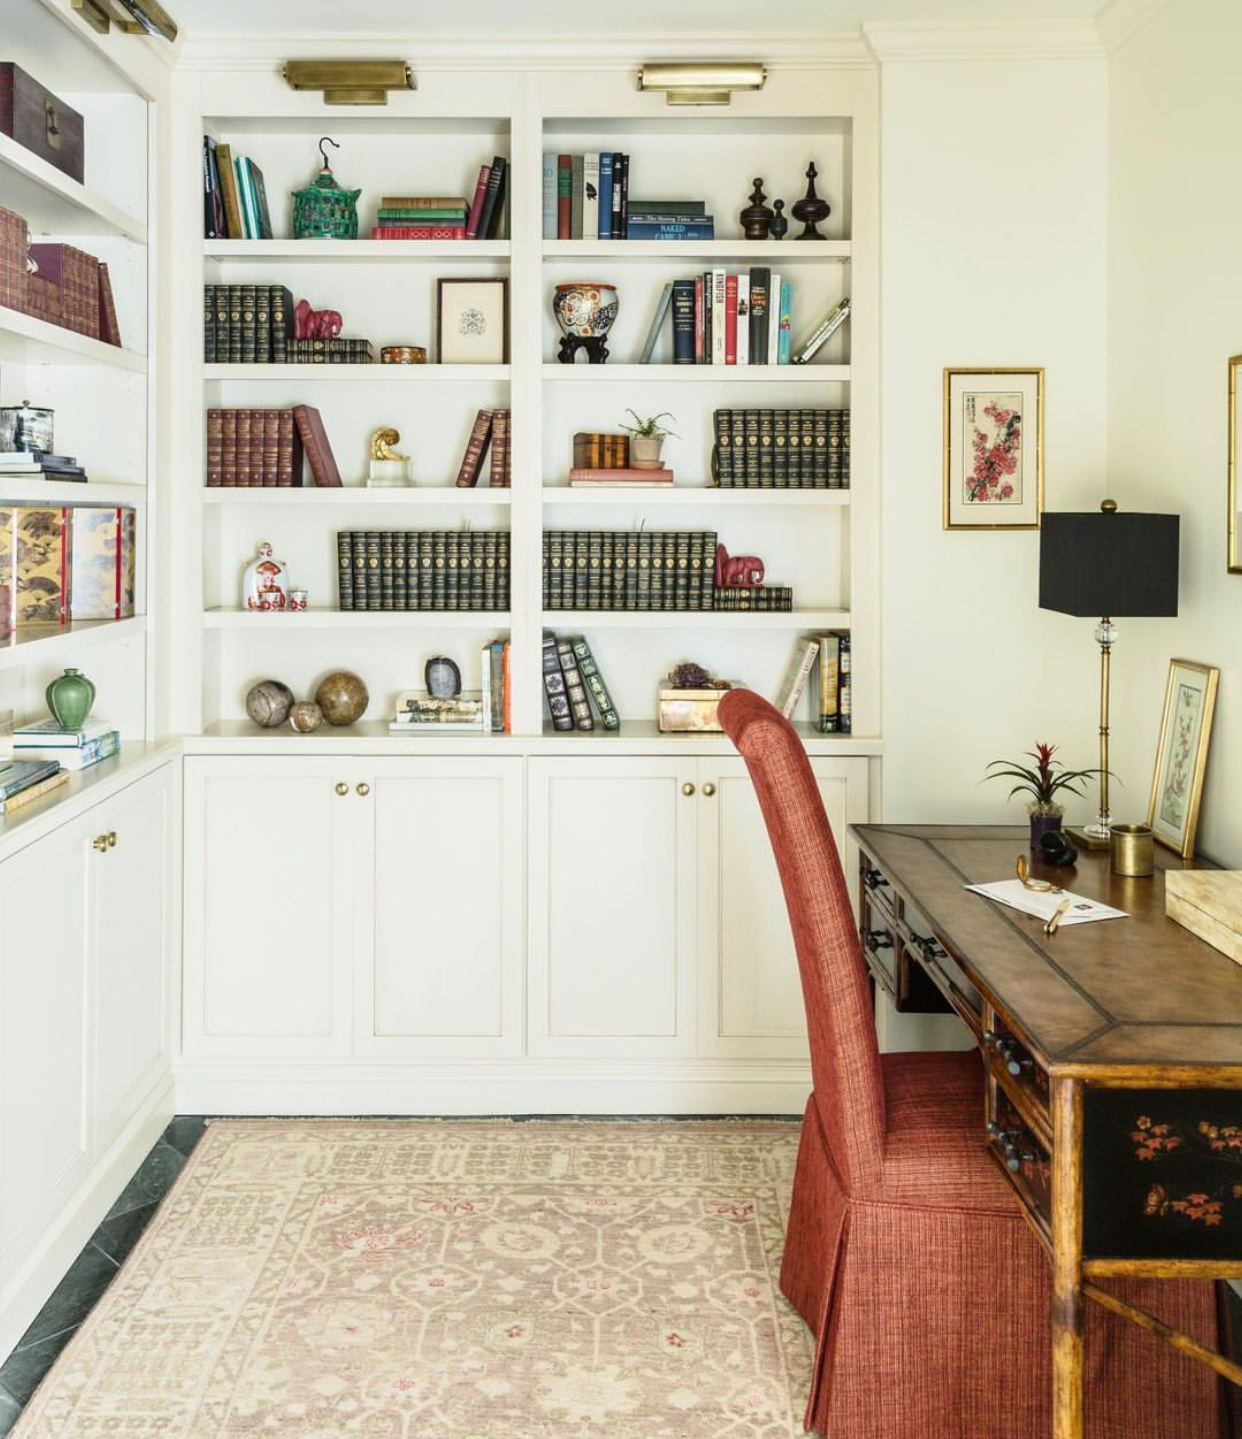 Spending more time in your home office? We are too!   The first step in building a comfortable office is getting comfortable furniture. You'll spend long hours at your desk and your computer; the right equipment can make all the difference in improving productivity and comfort.  📸: @saraessexbradley #interiordesign #design #susancurriedesign #inspire #luxuryliving #houseenvy #neworleansinteriors #neworleansinteriordesign #nolainteriordesigner #interiordesigninspiration #interiordecor